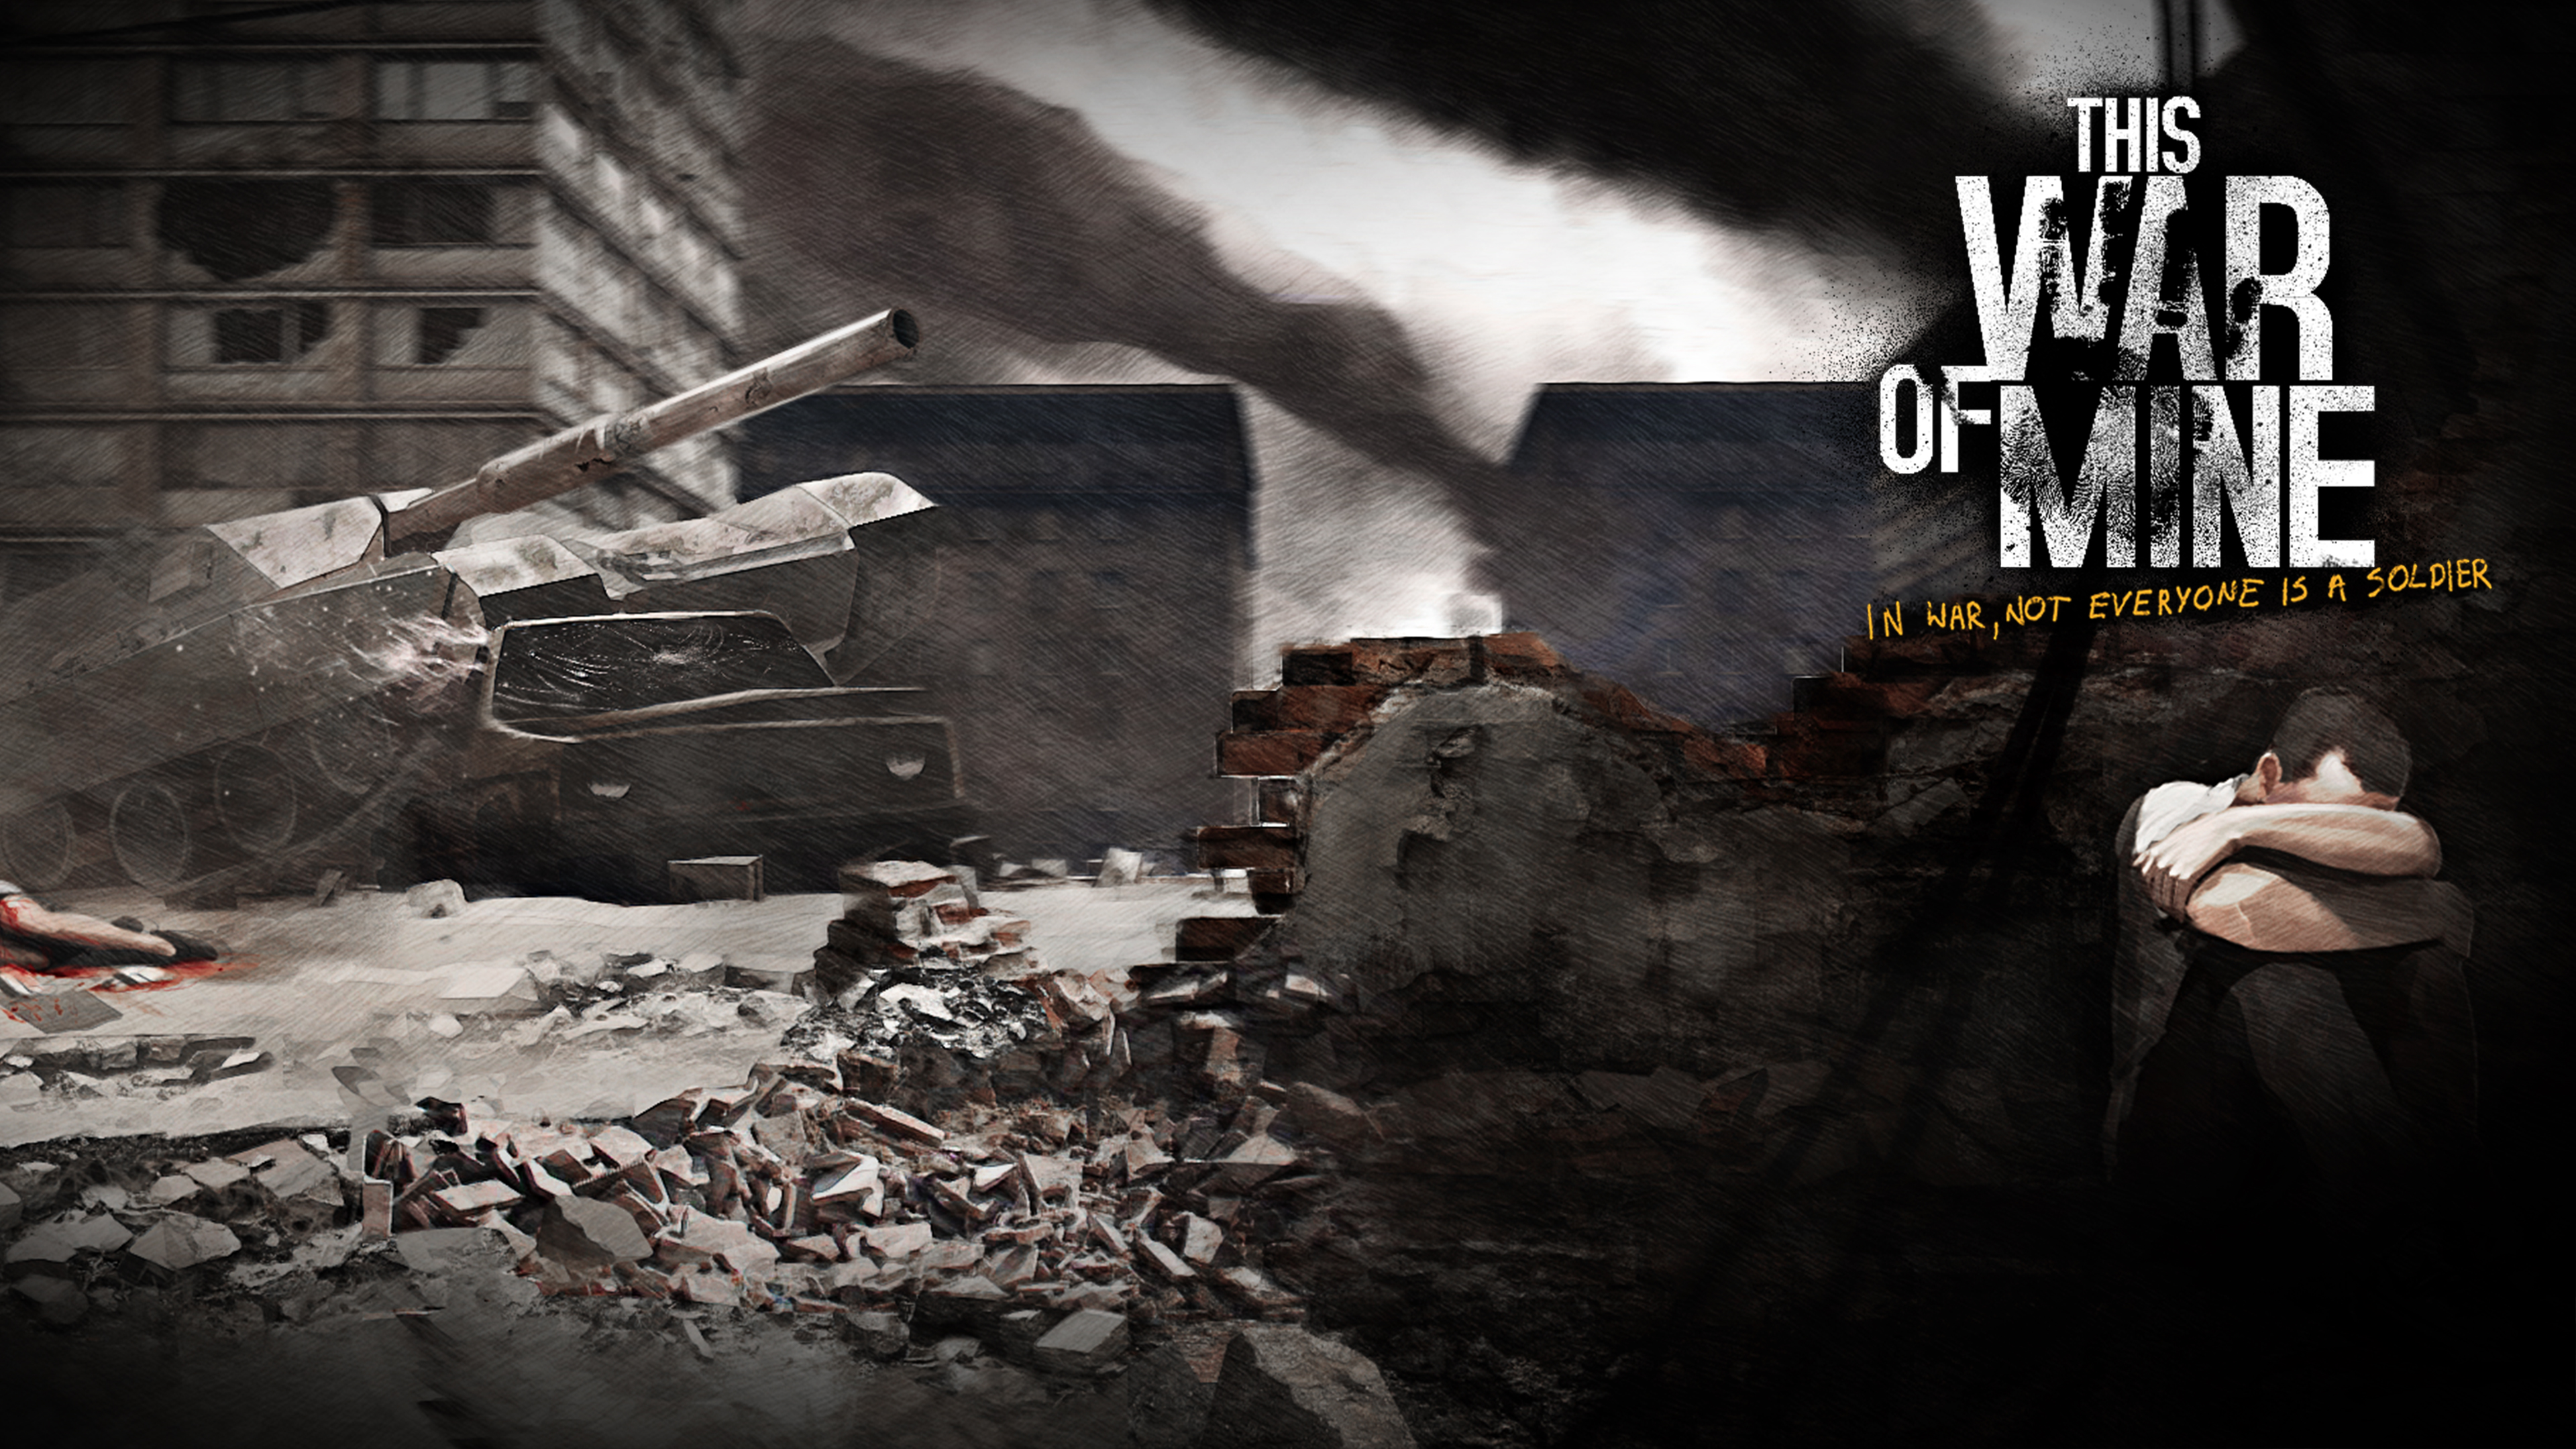 This War Of Mine Wallpaper: This War Of Mine: The Little Ones (2016) Promotional Art